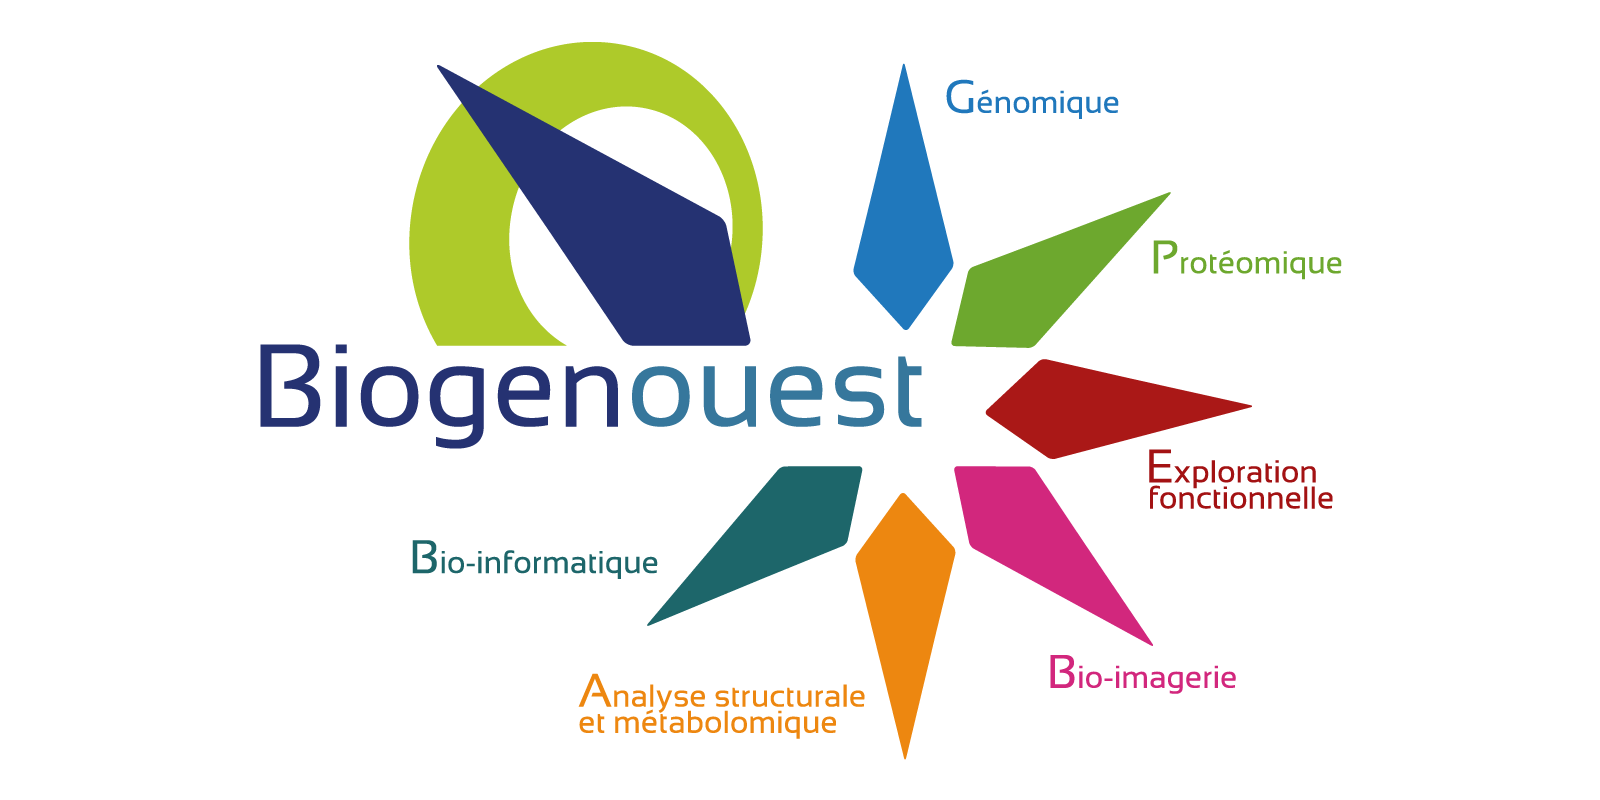 Axes Biogenouest